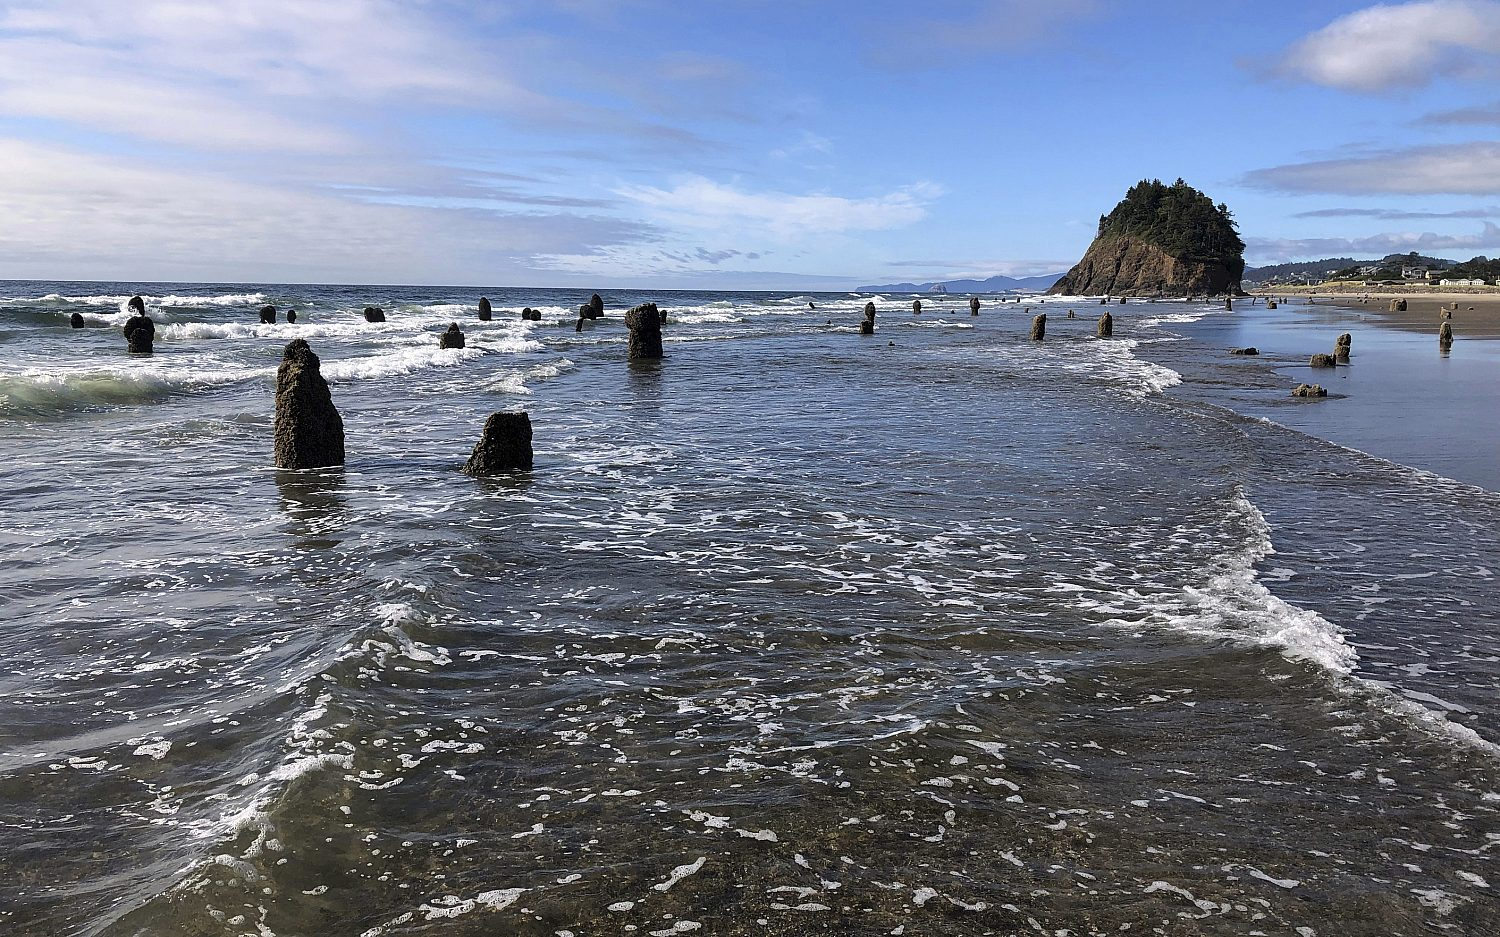 The Pacific Northwest's suffocating ocean